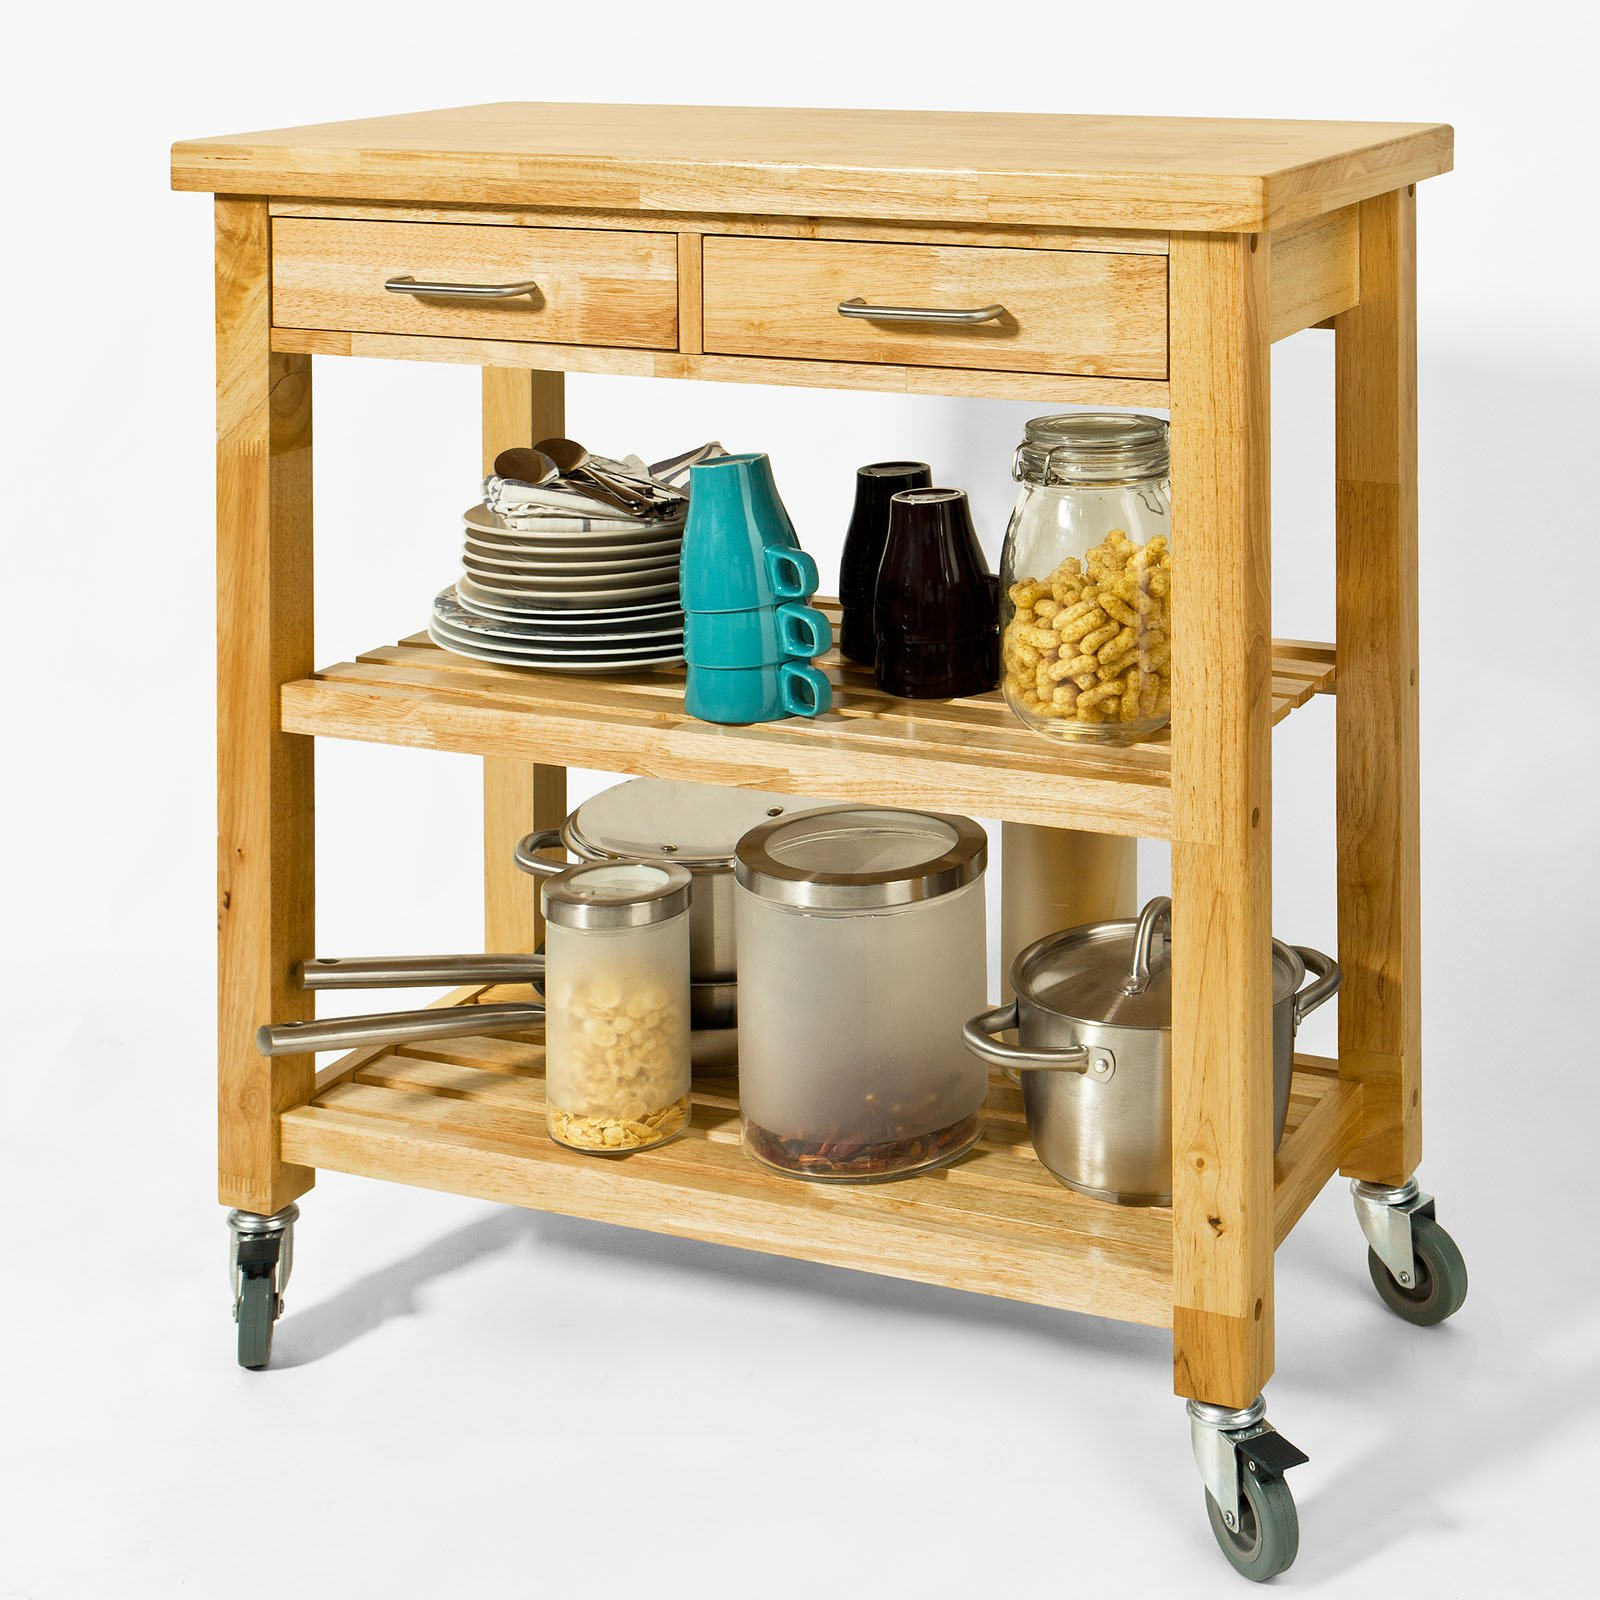 Haotian FKW24-N (natual), Rubber Wood Kitchen Trolley Cart with Two Drawers & Shelves, Kitchen Storage Trolley, L80cm(31.5in)xW40cm(15.7in)xH90cm(35.4in) by Haotian (Image #2)